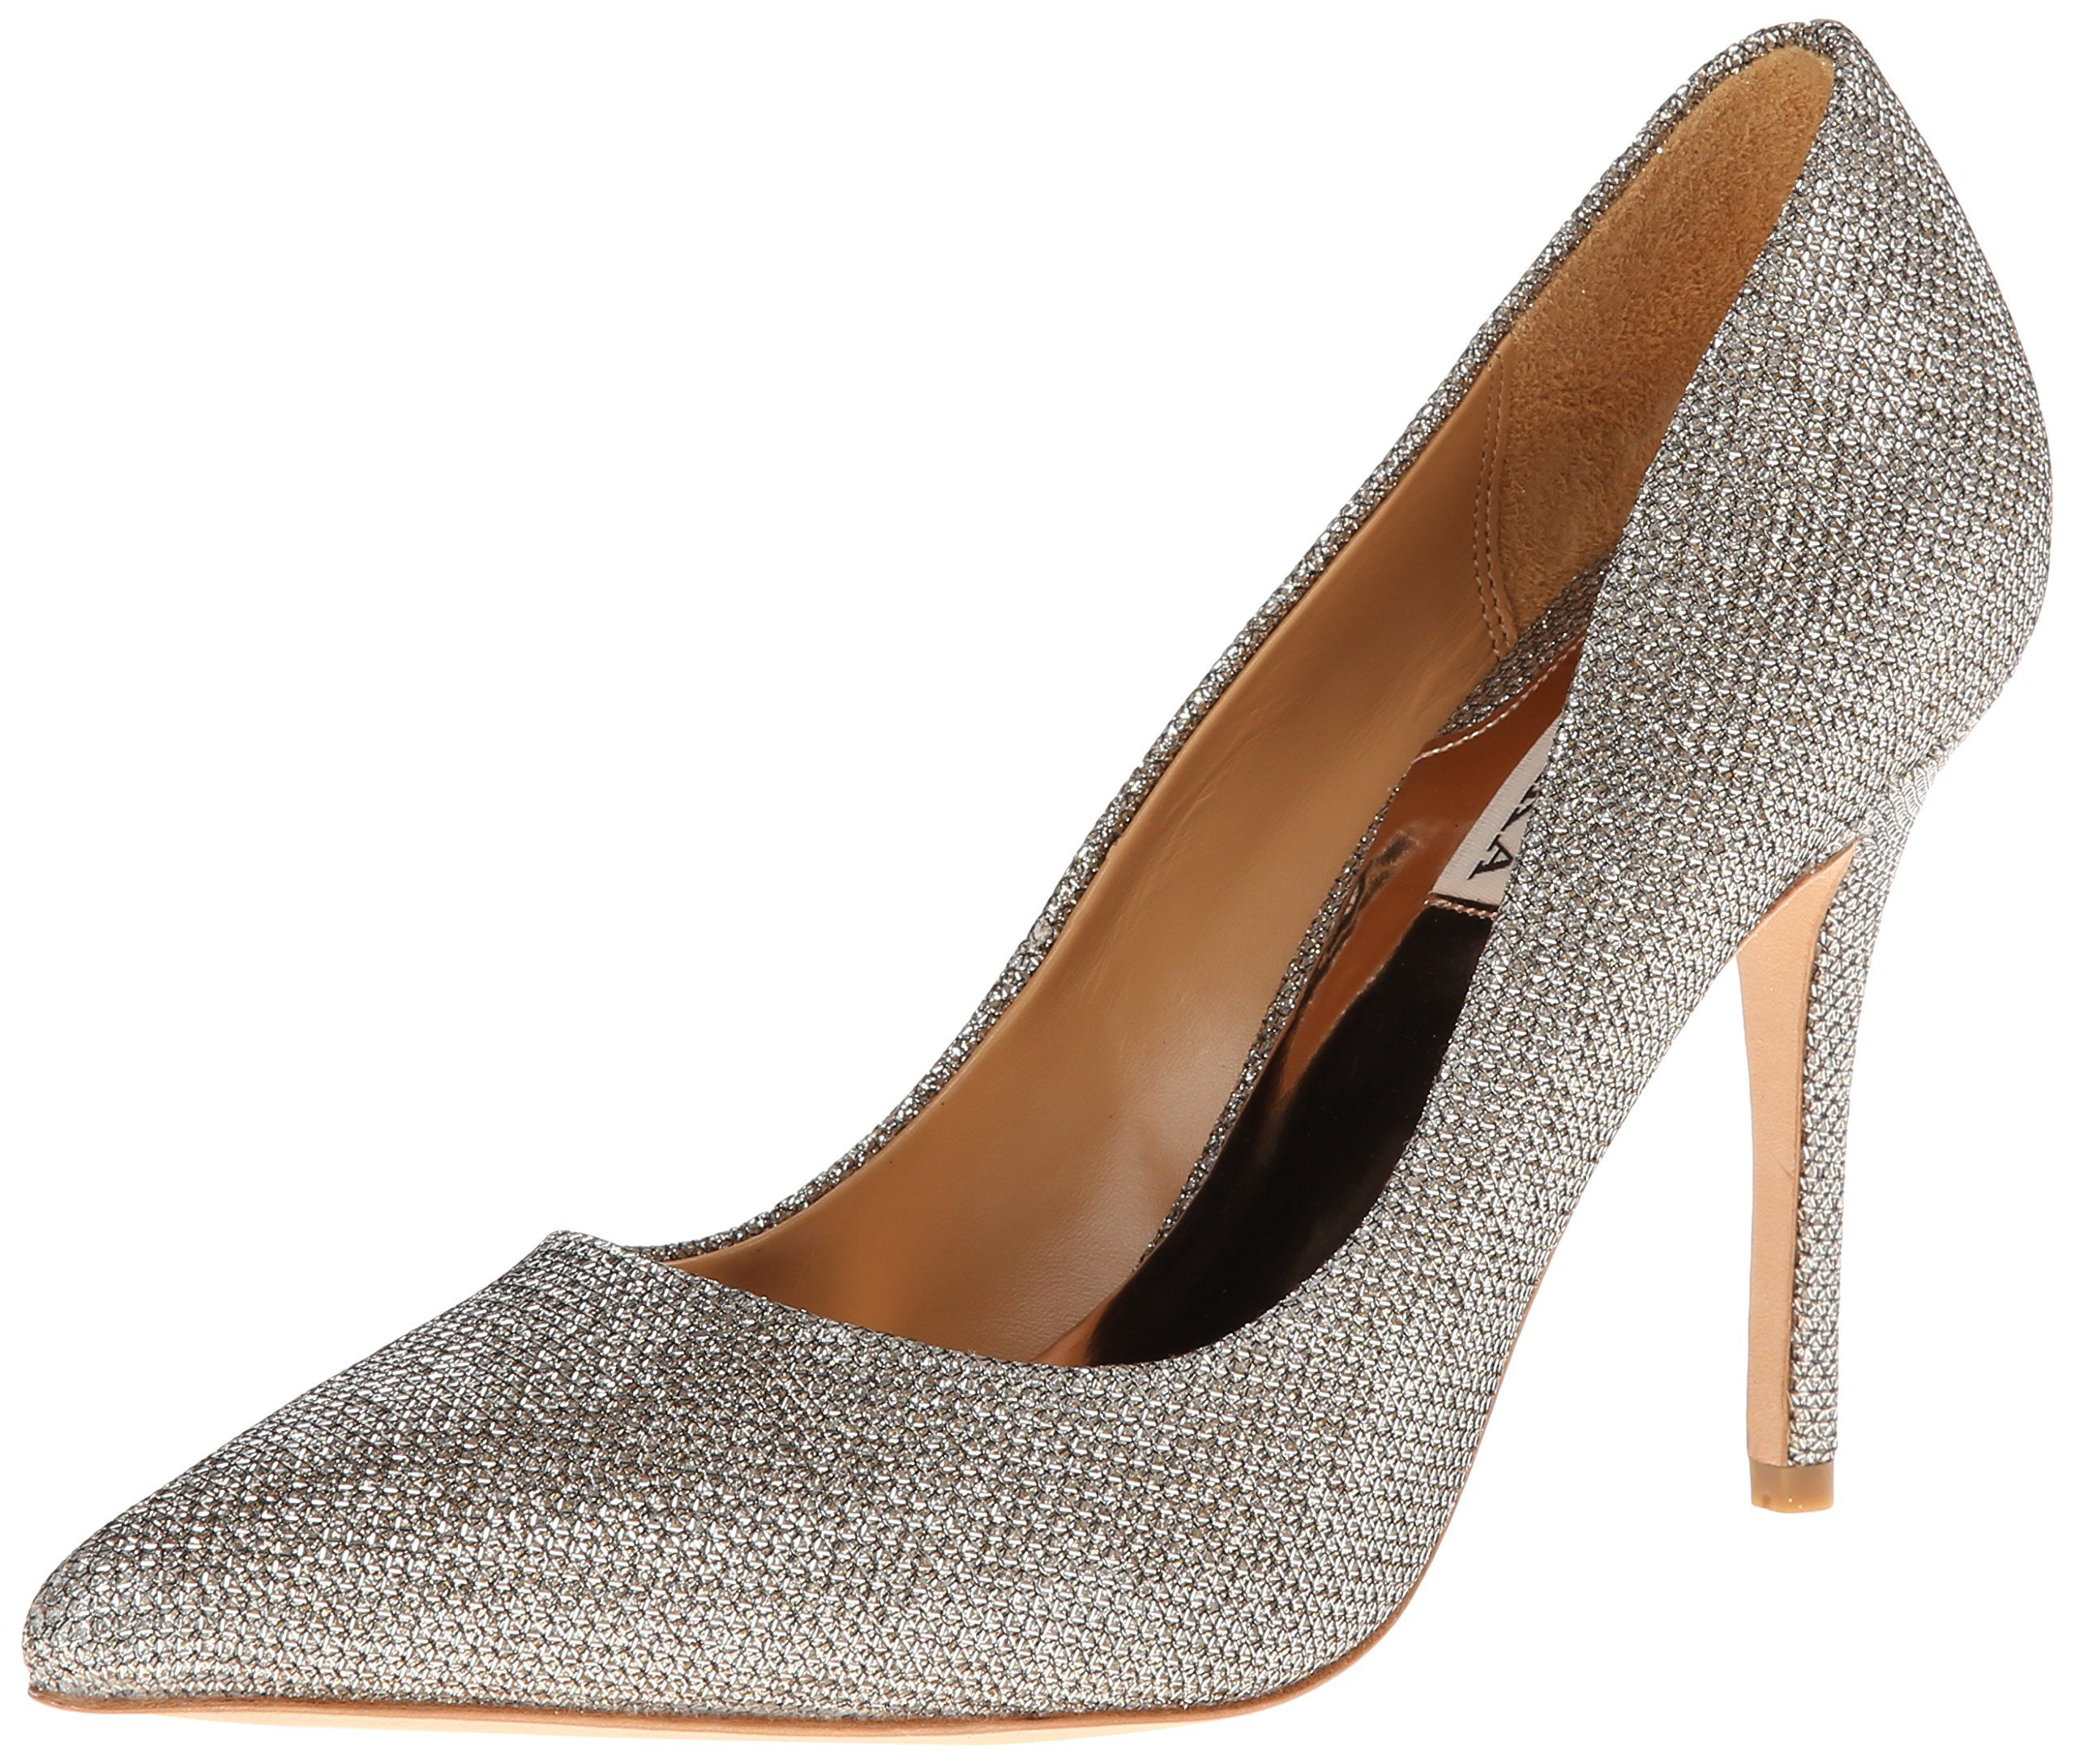 Badgley Mischka Women's Luster Dress Pump,Platino,6 M US. Textured pump in